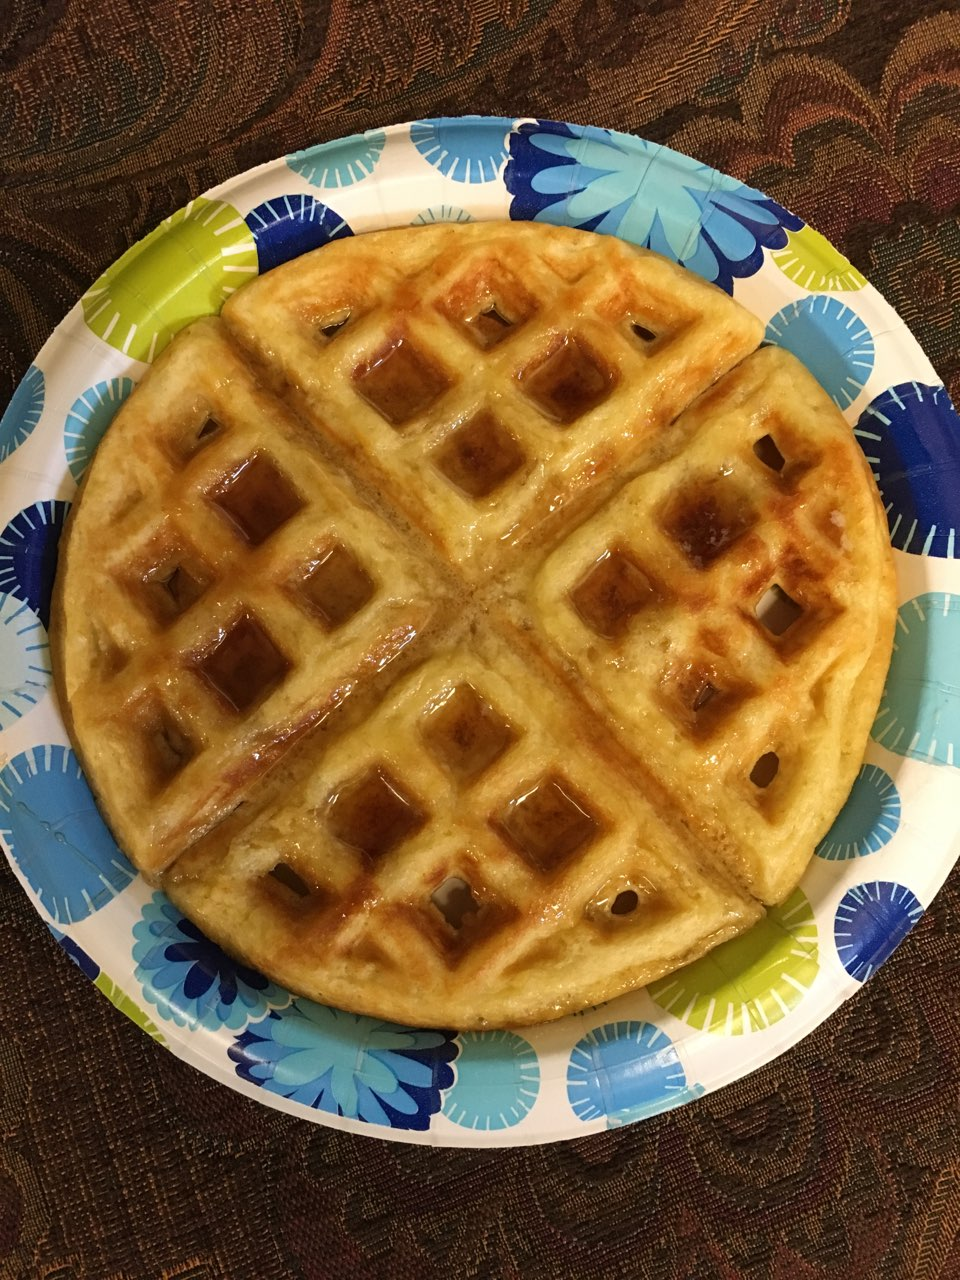 Betty Crocker Homemade Waffles Directions Calories Nutrition More Fooducate